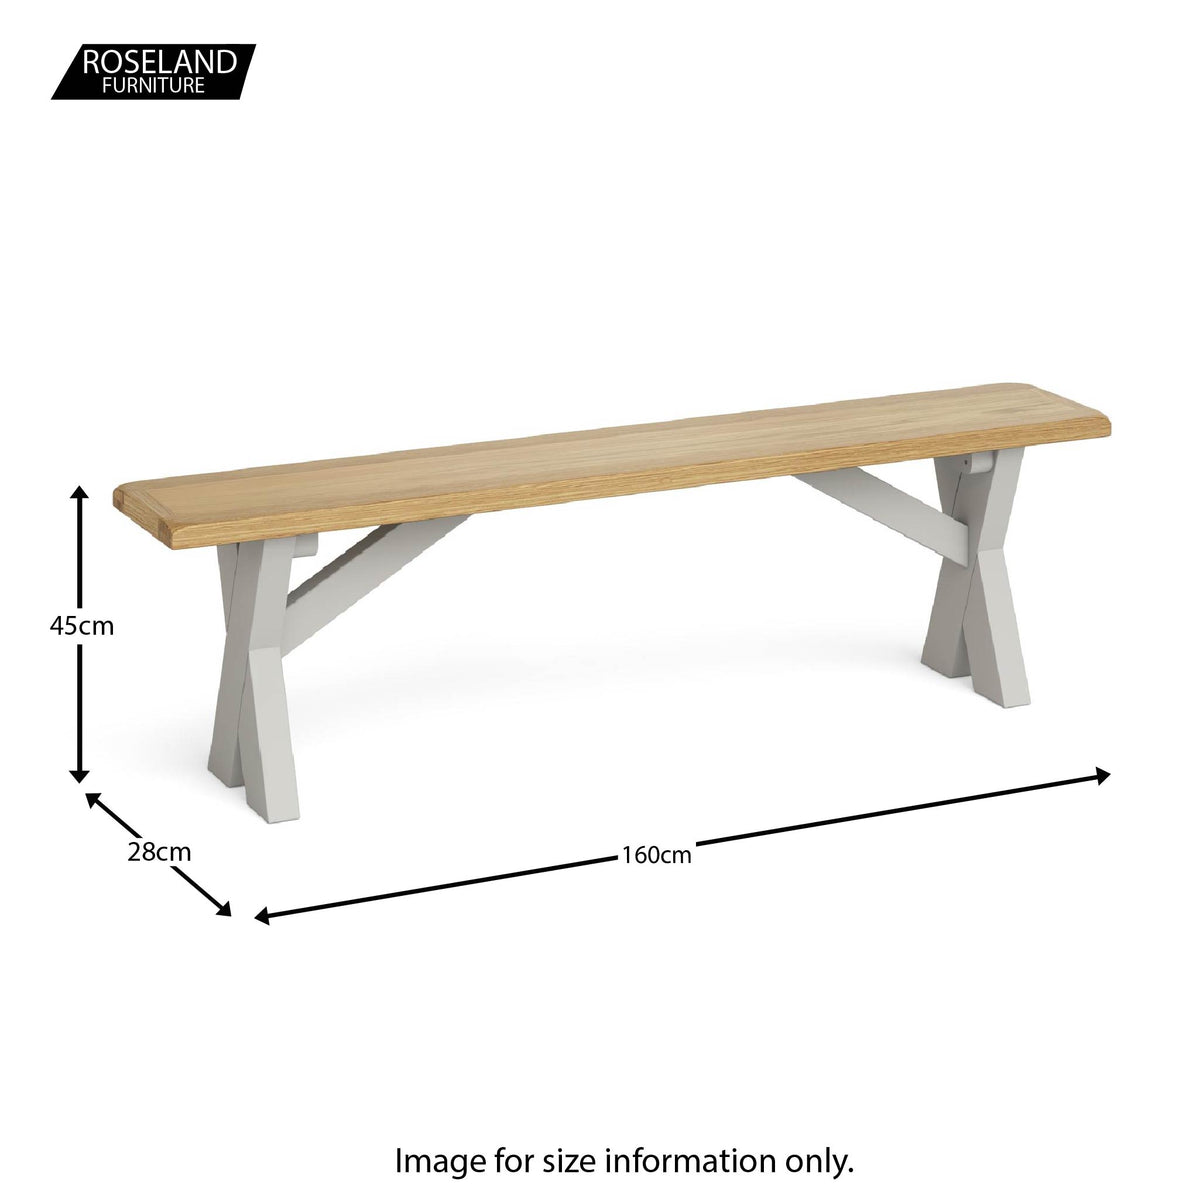 Lundy Grey Crossed Based Oak Topped Bench - Size guide